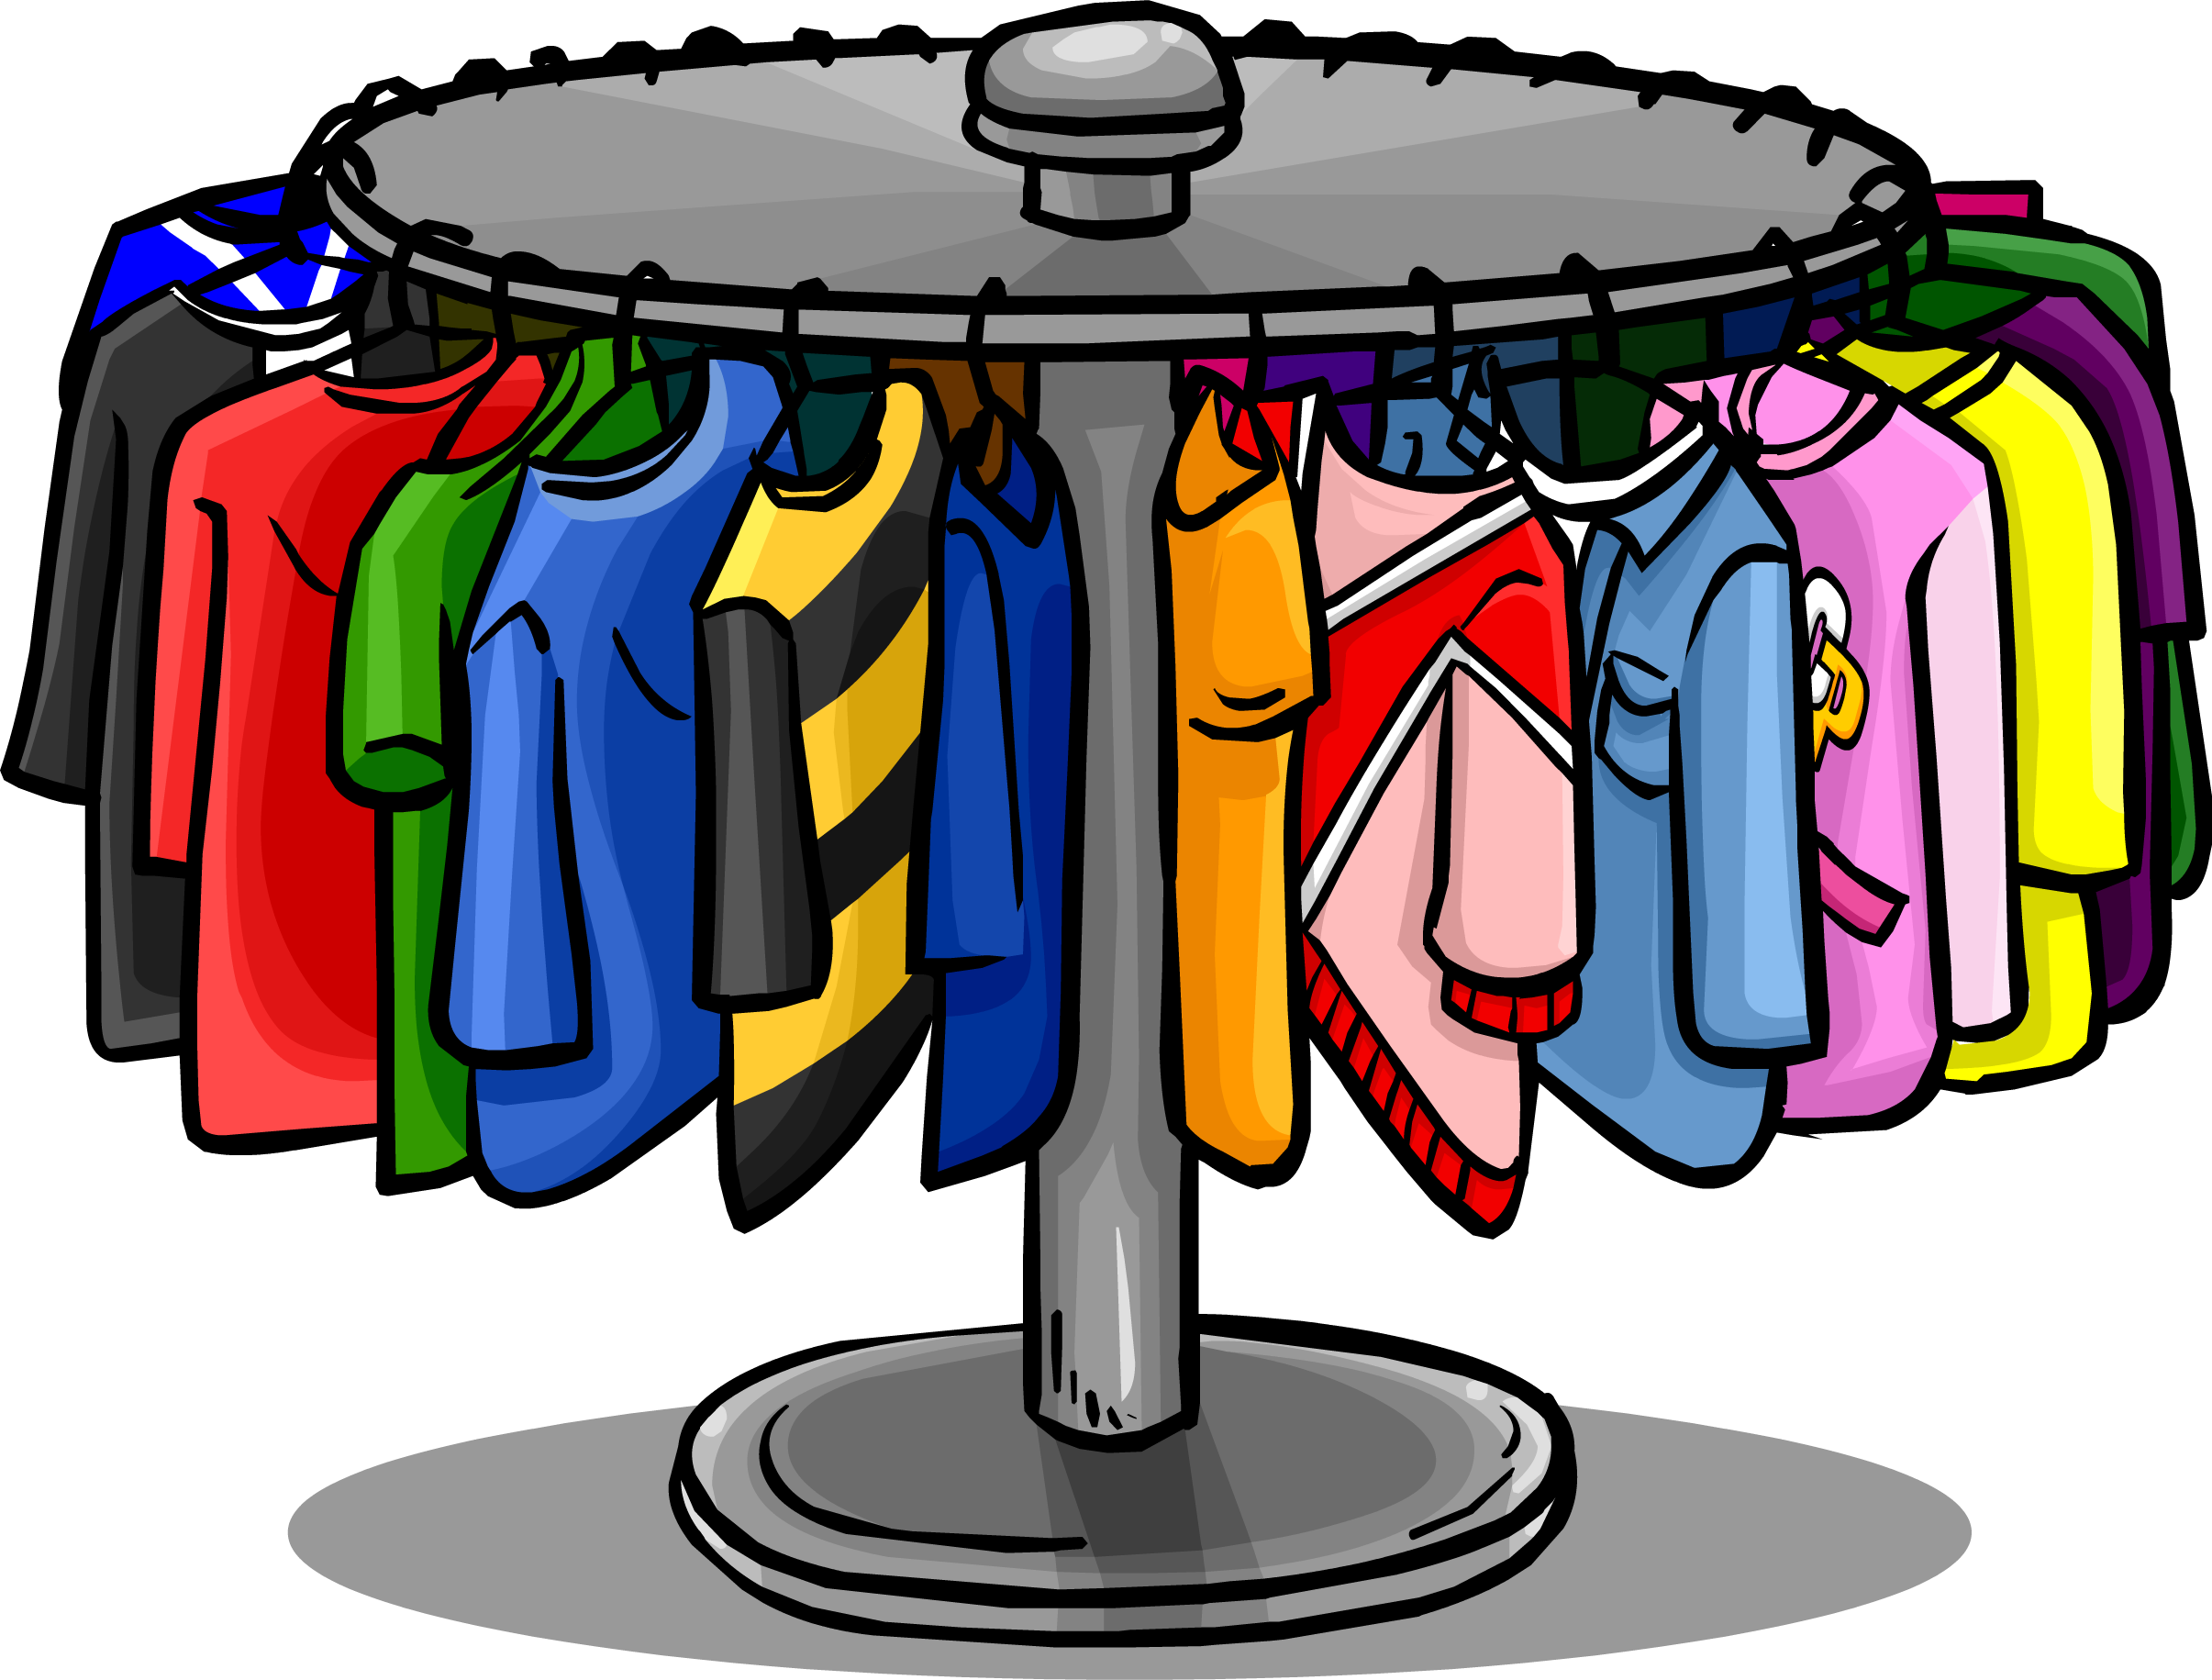 Clothing clipart clothing item. Coat rack pencil and